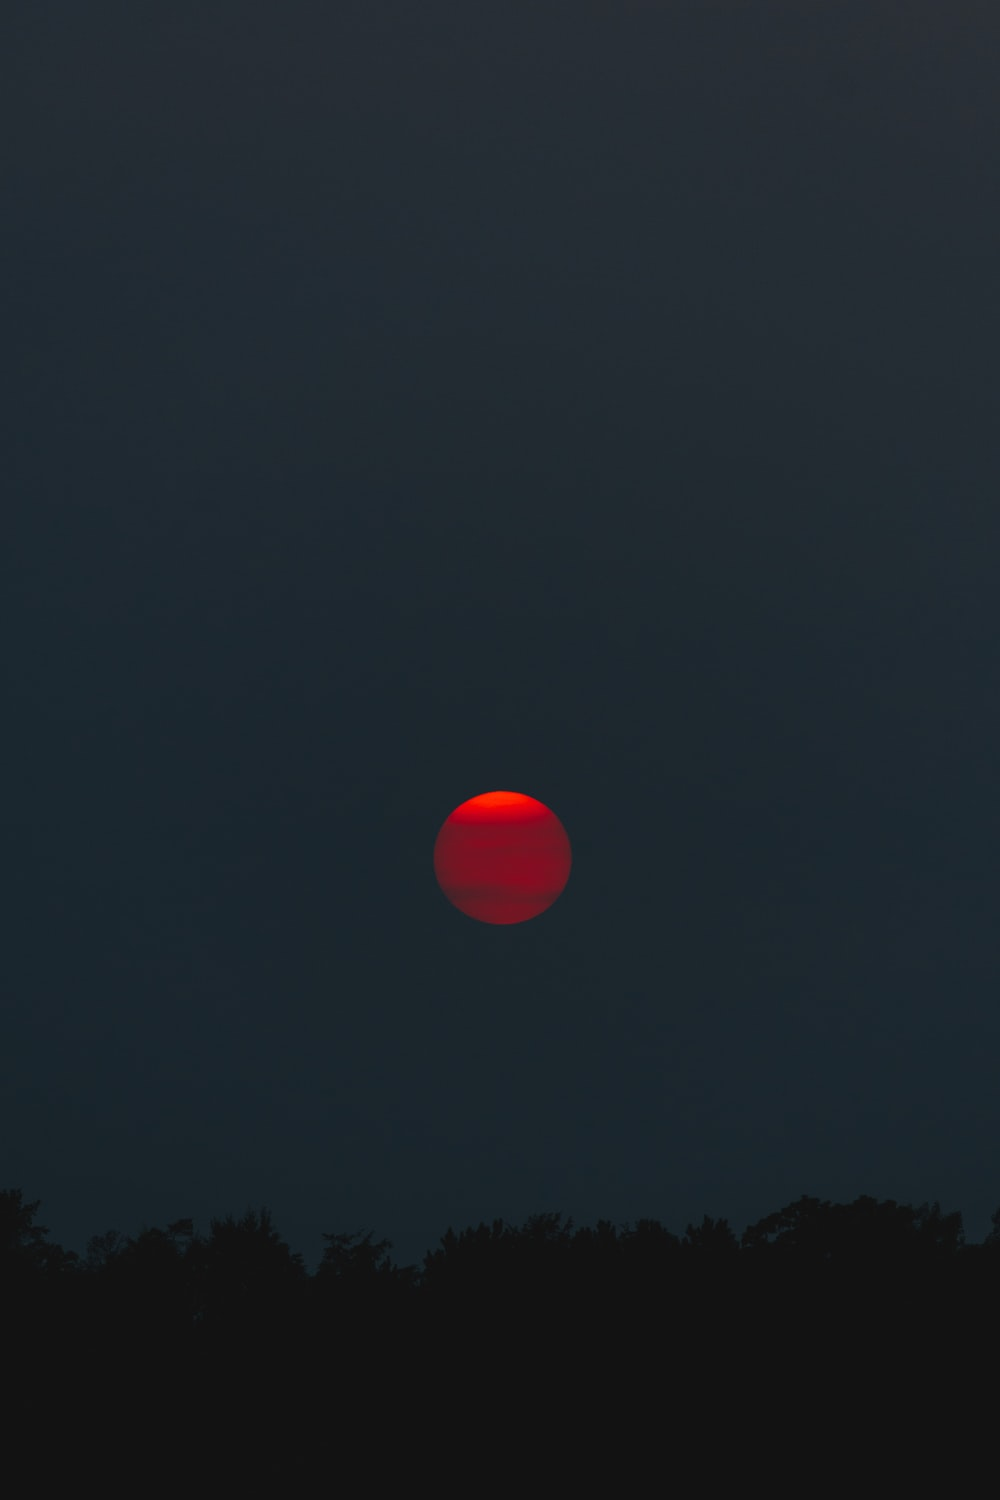 red moon at night